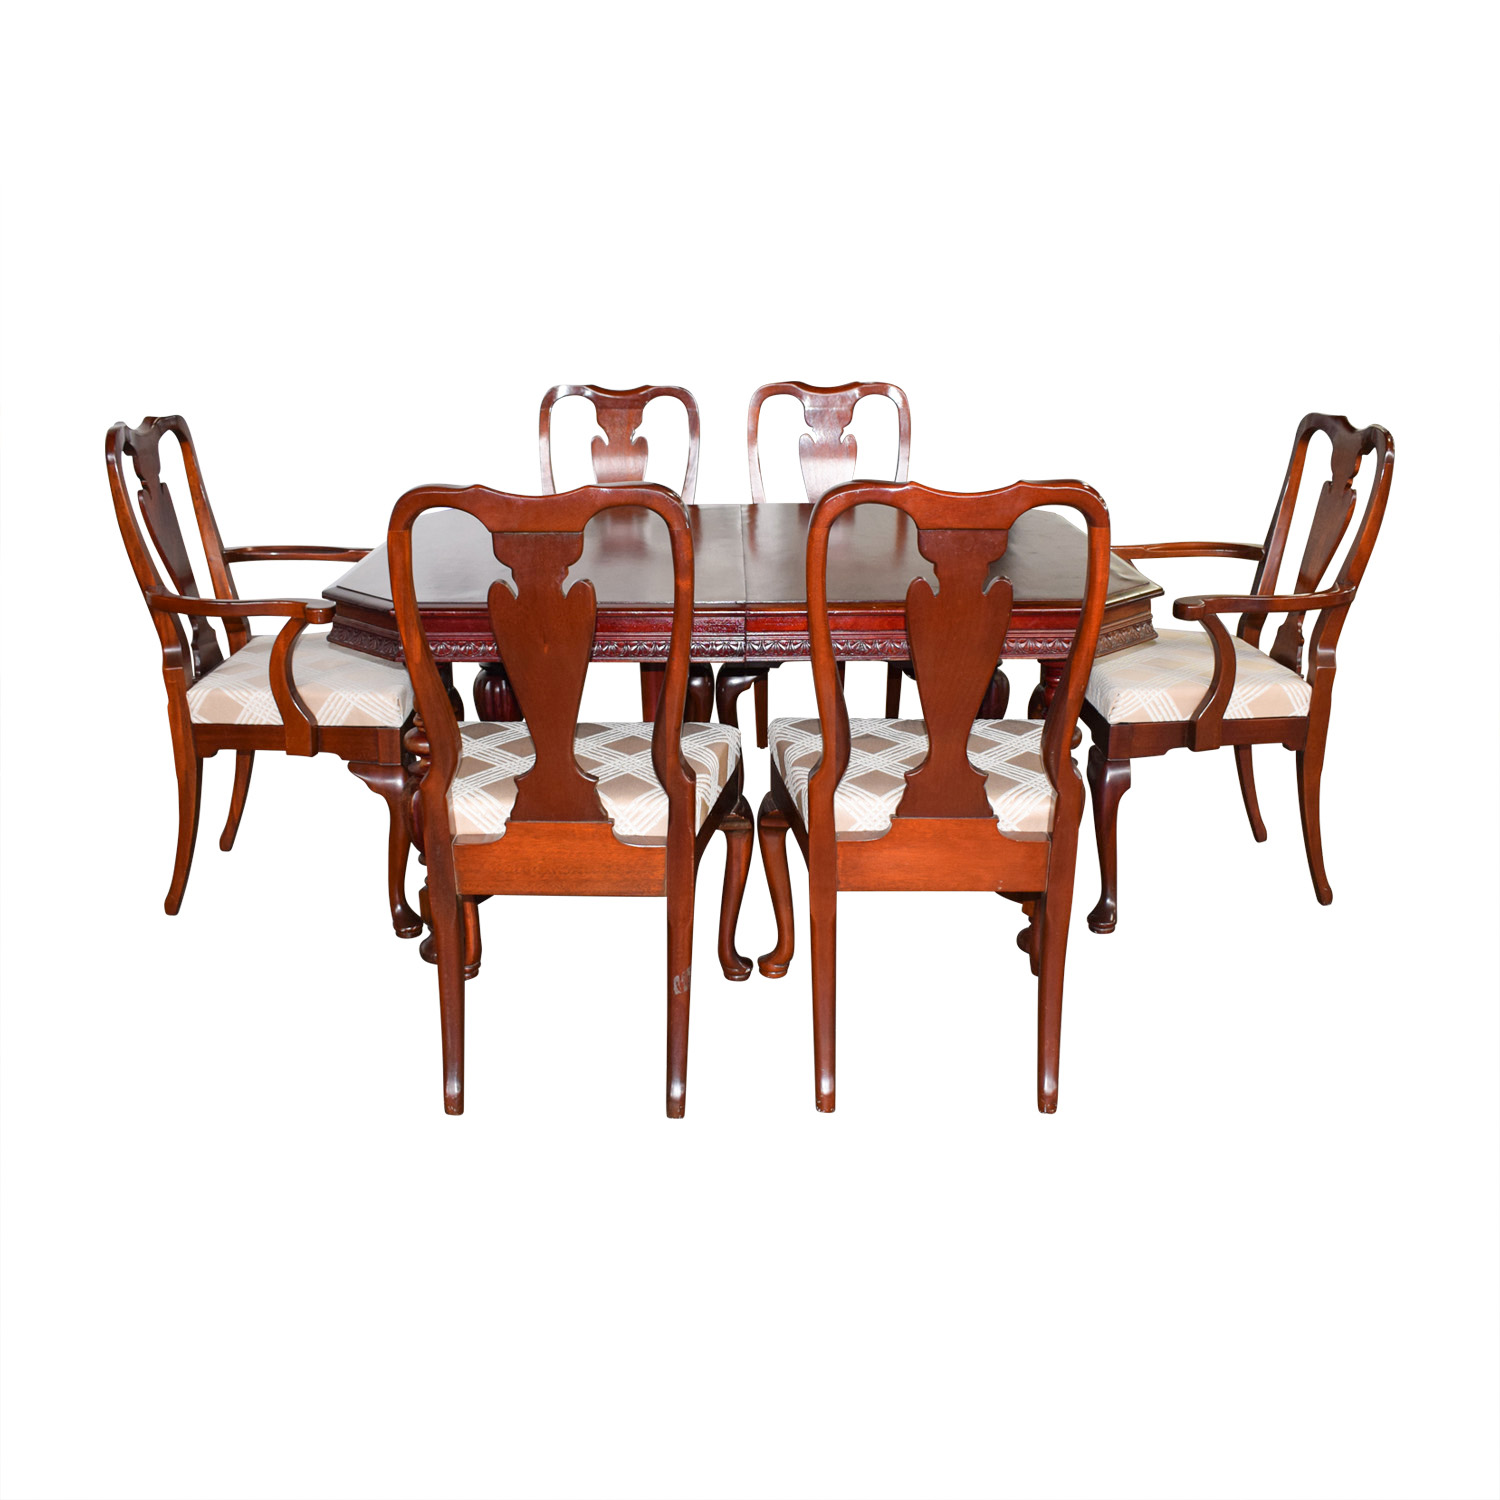 Mahogany Carved Wood Dining Set with Tan and White Upholstery nyc